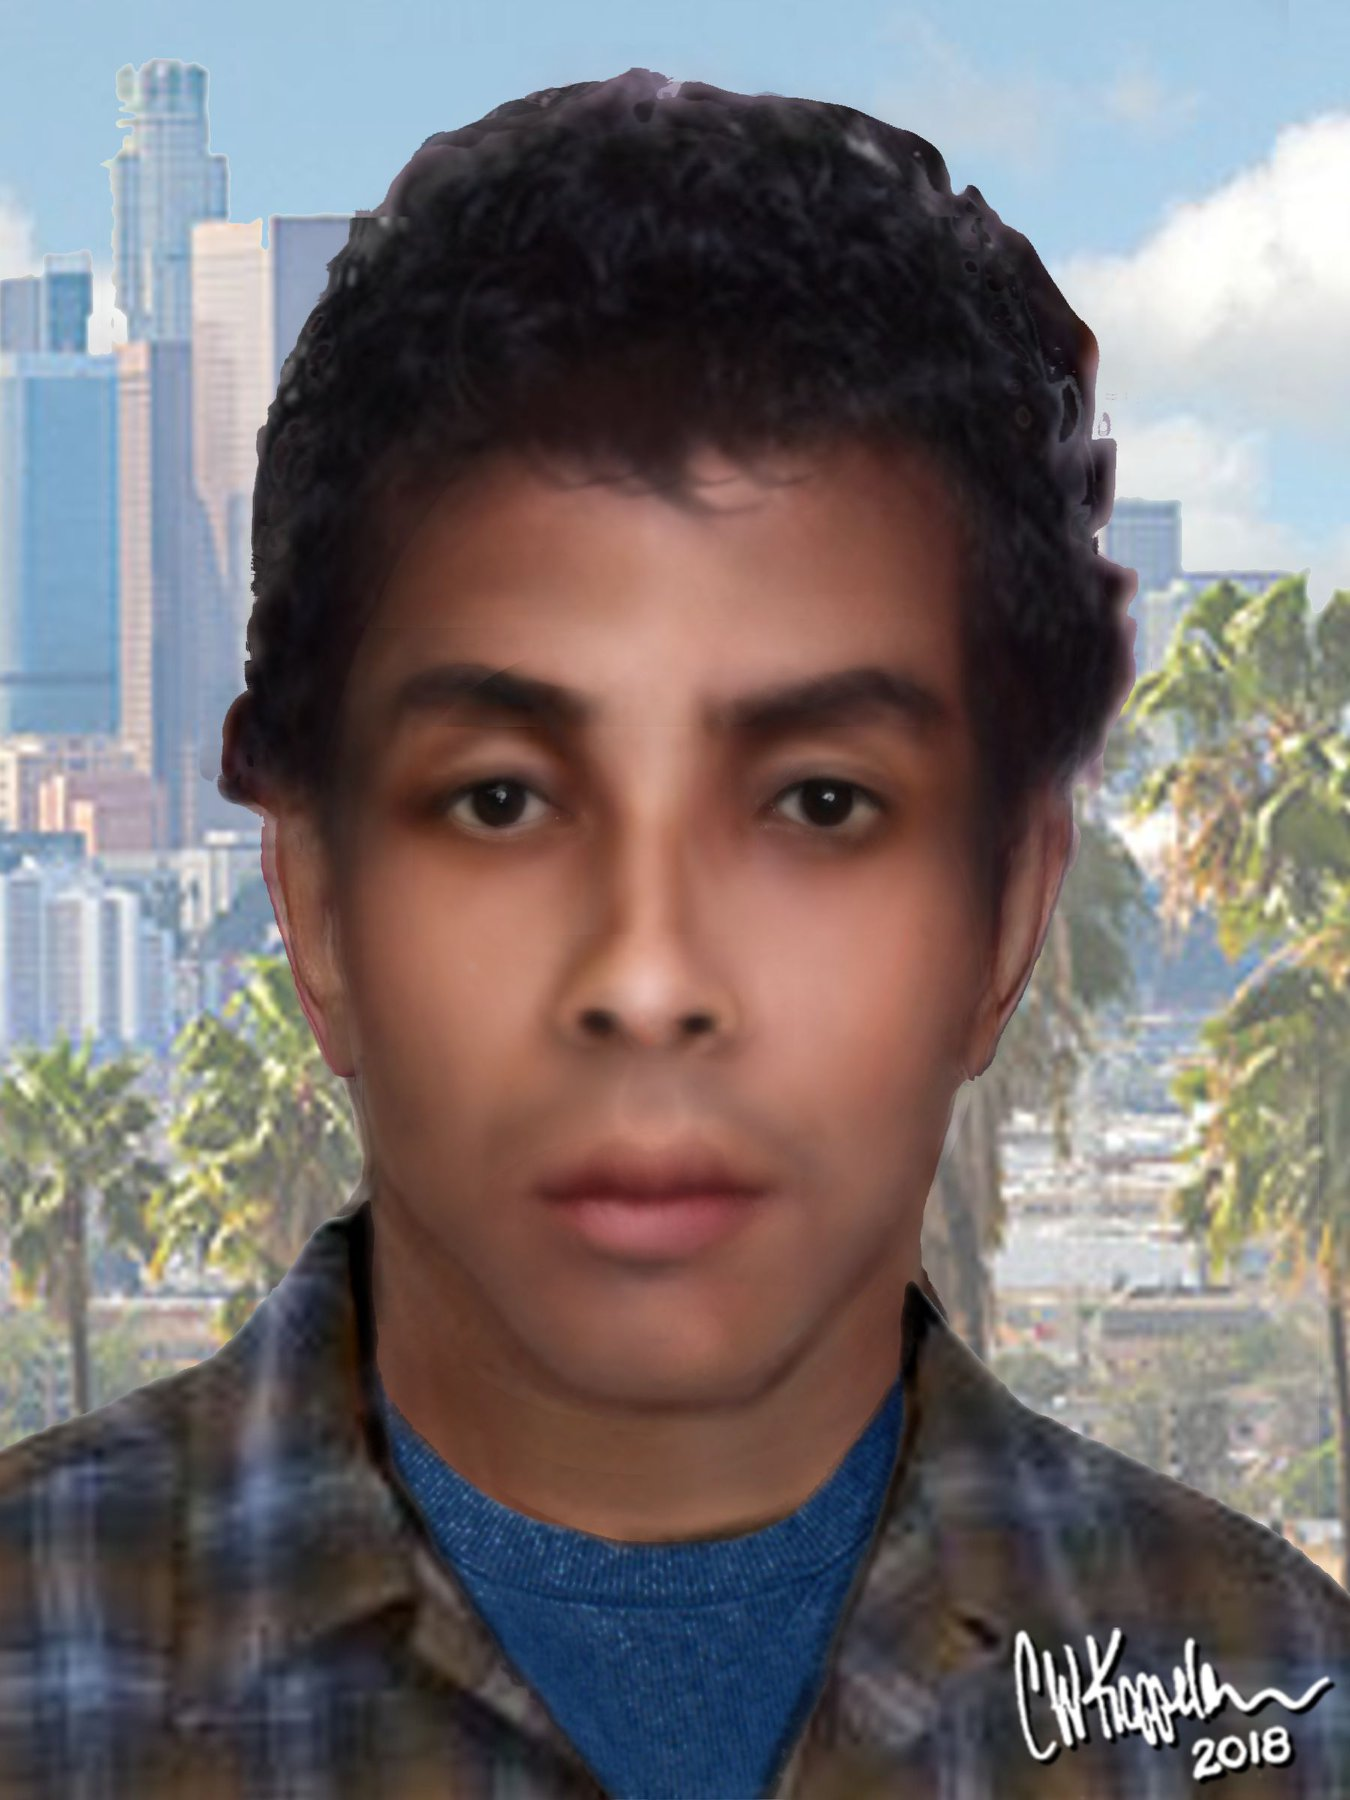 Los Angeles John Doe (March 7, 1995)